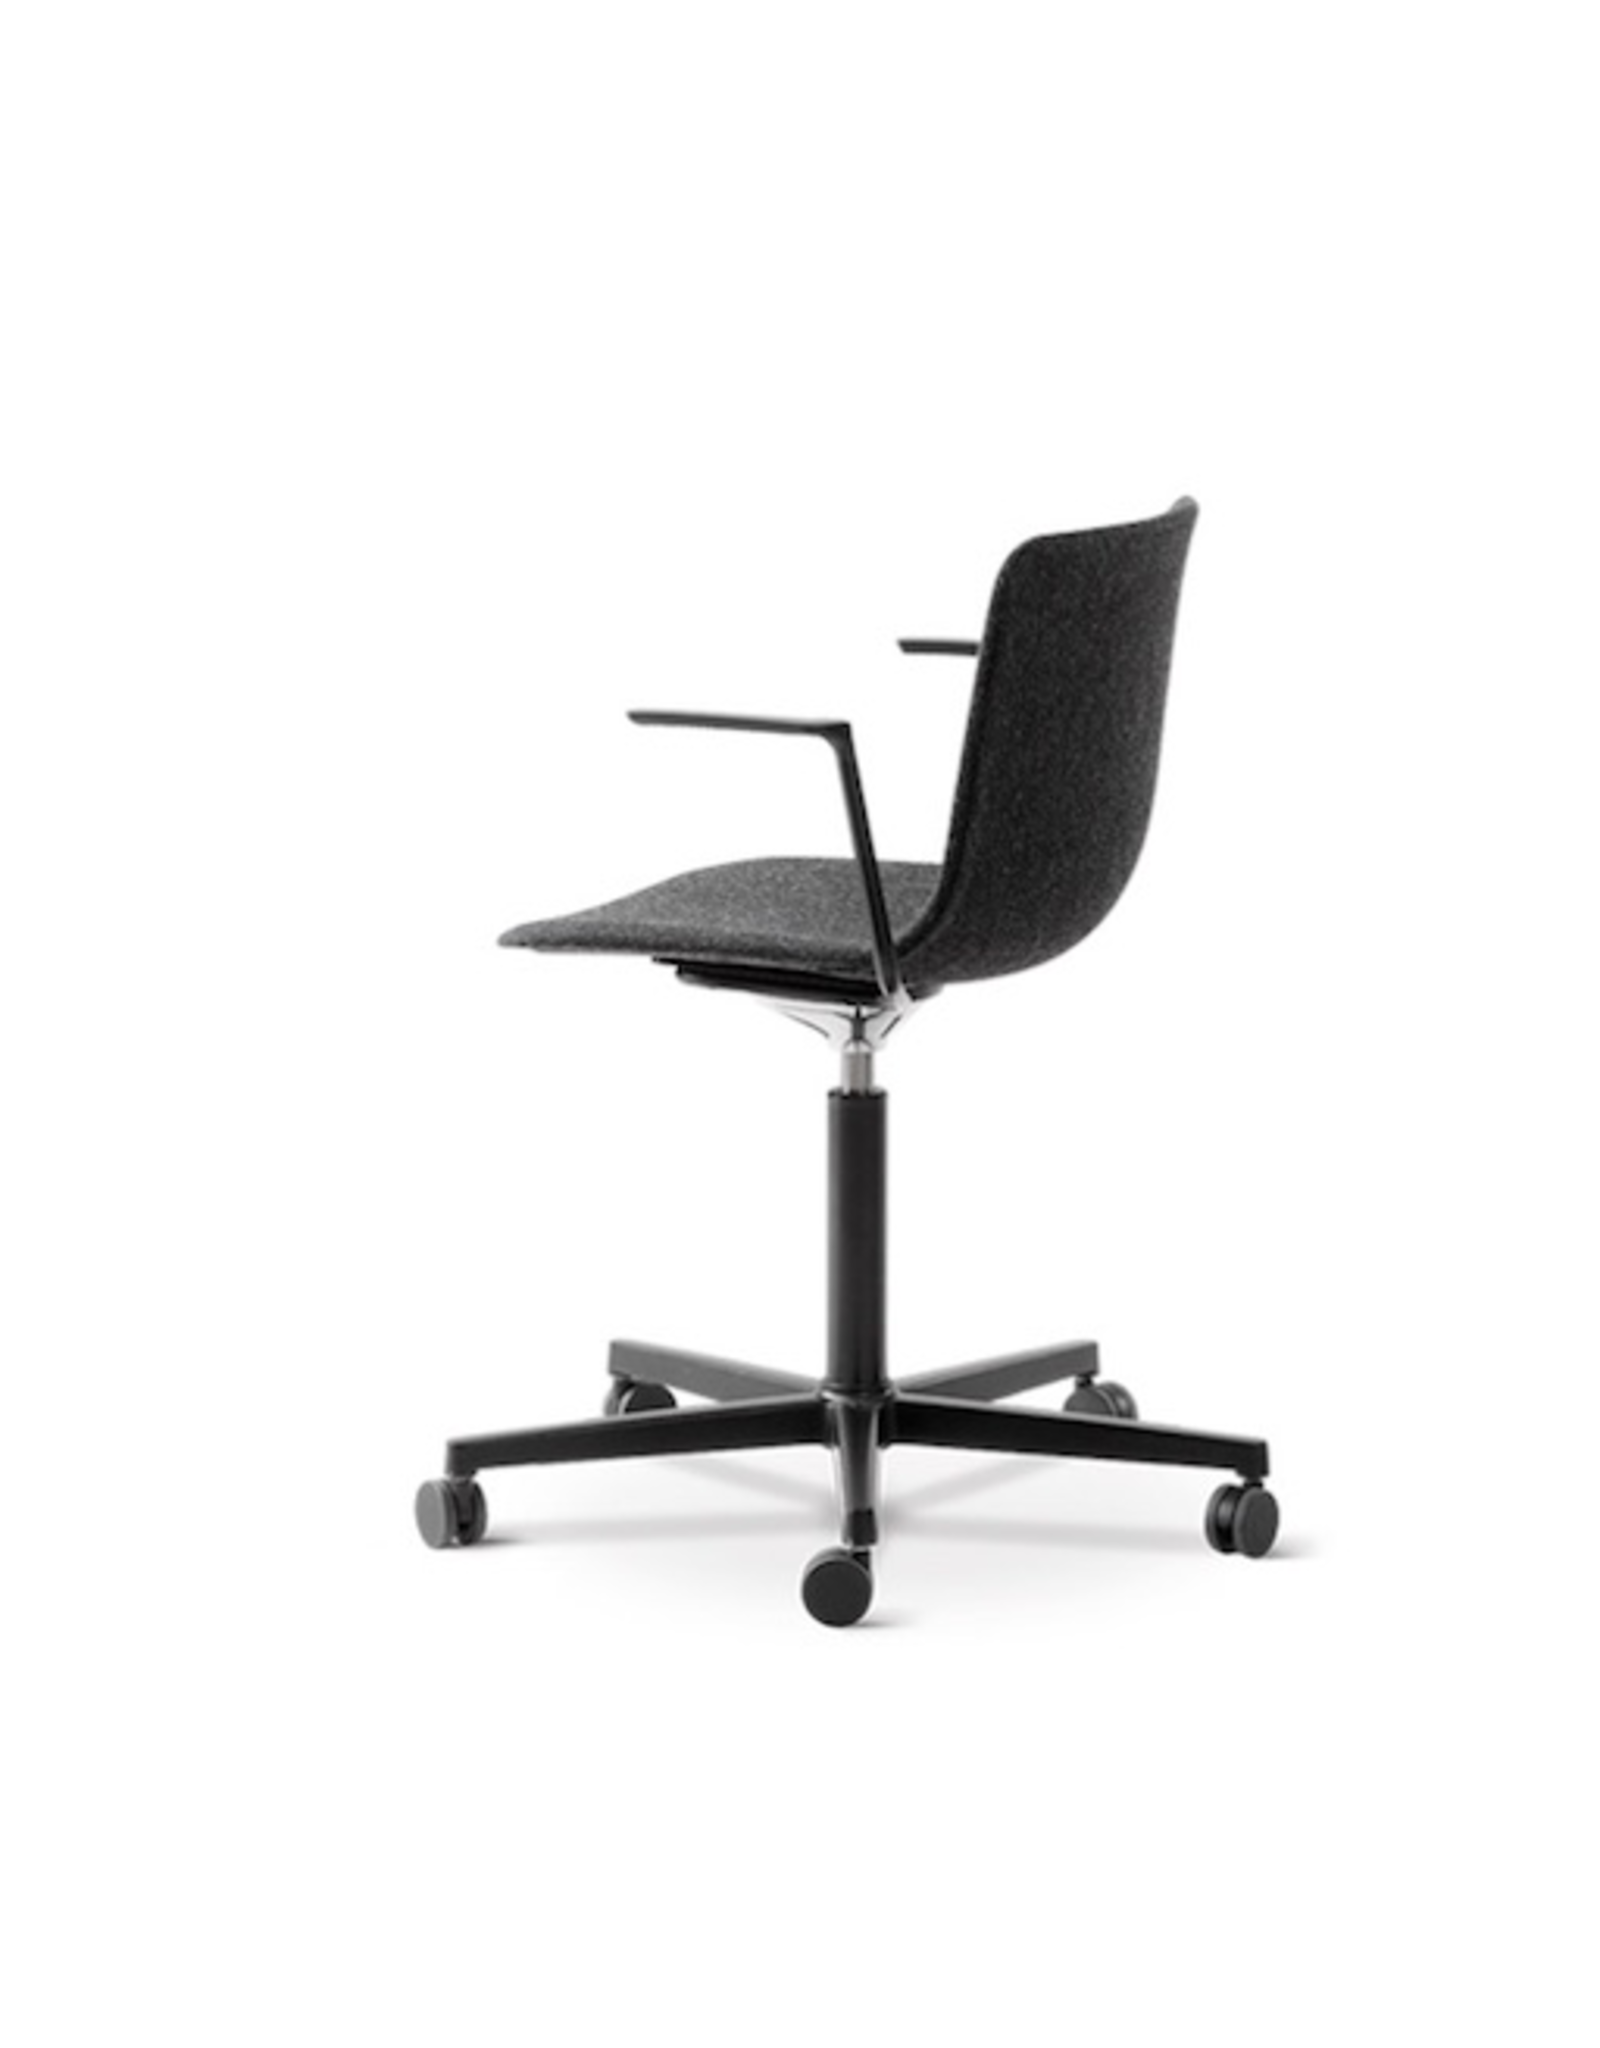 FREDERICIA 4032 PATO OFFICE ARMCHAIR IN GREY FABRIC